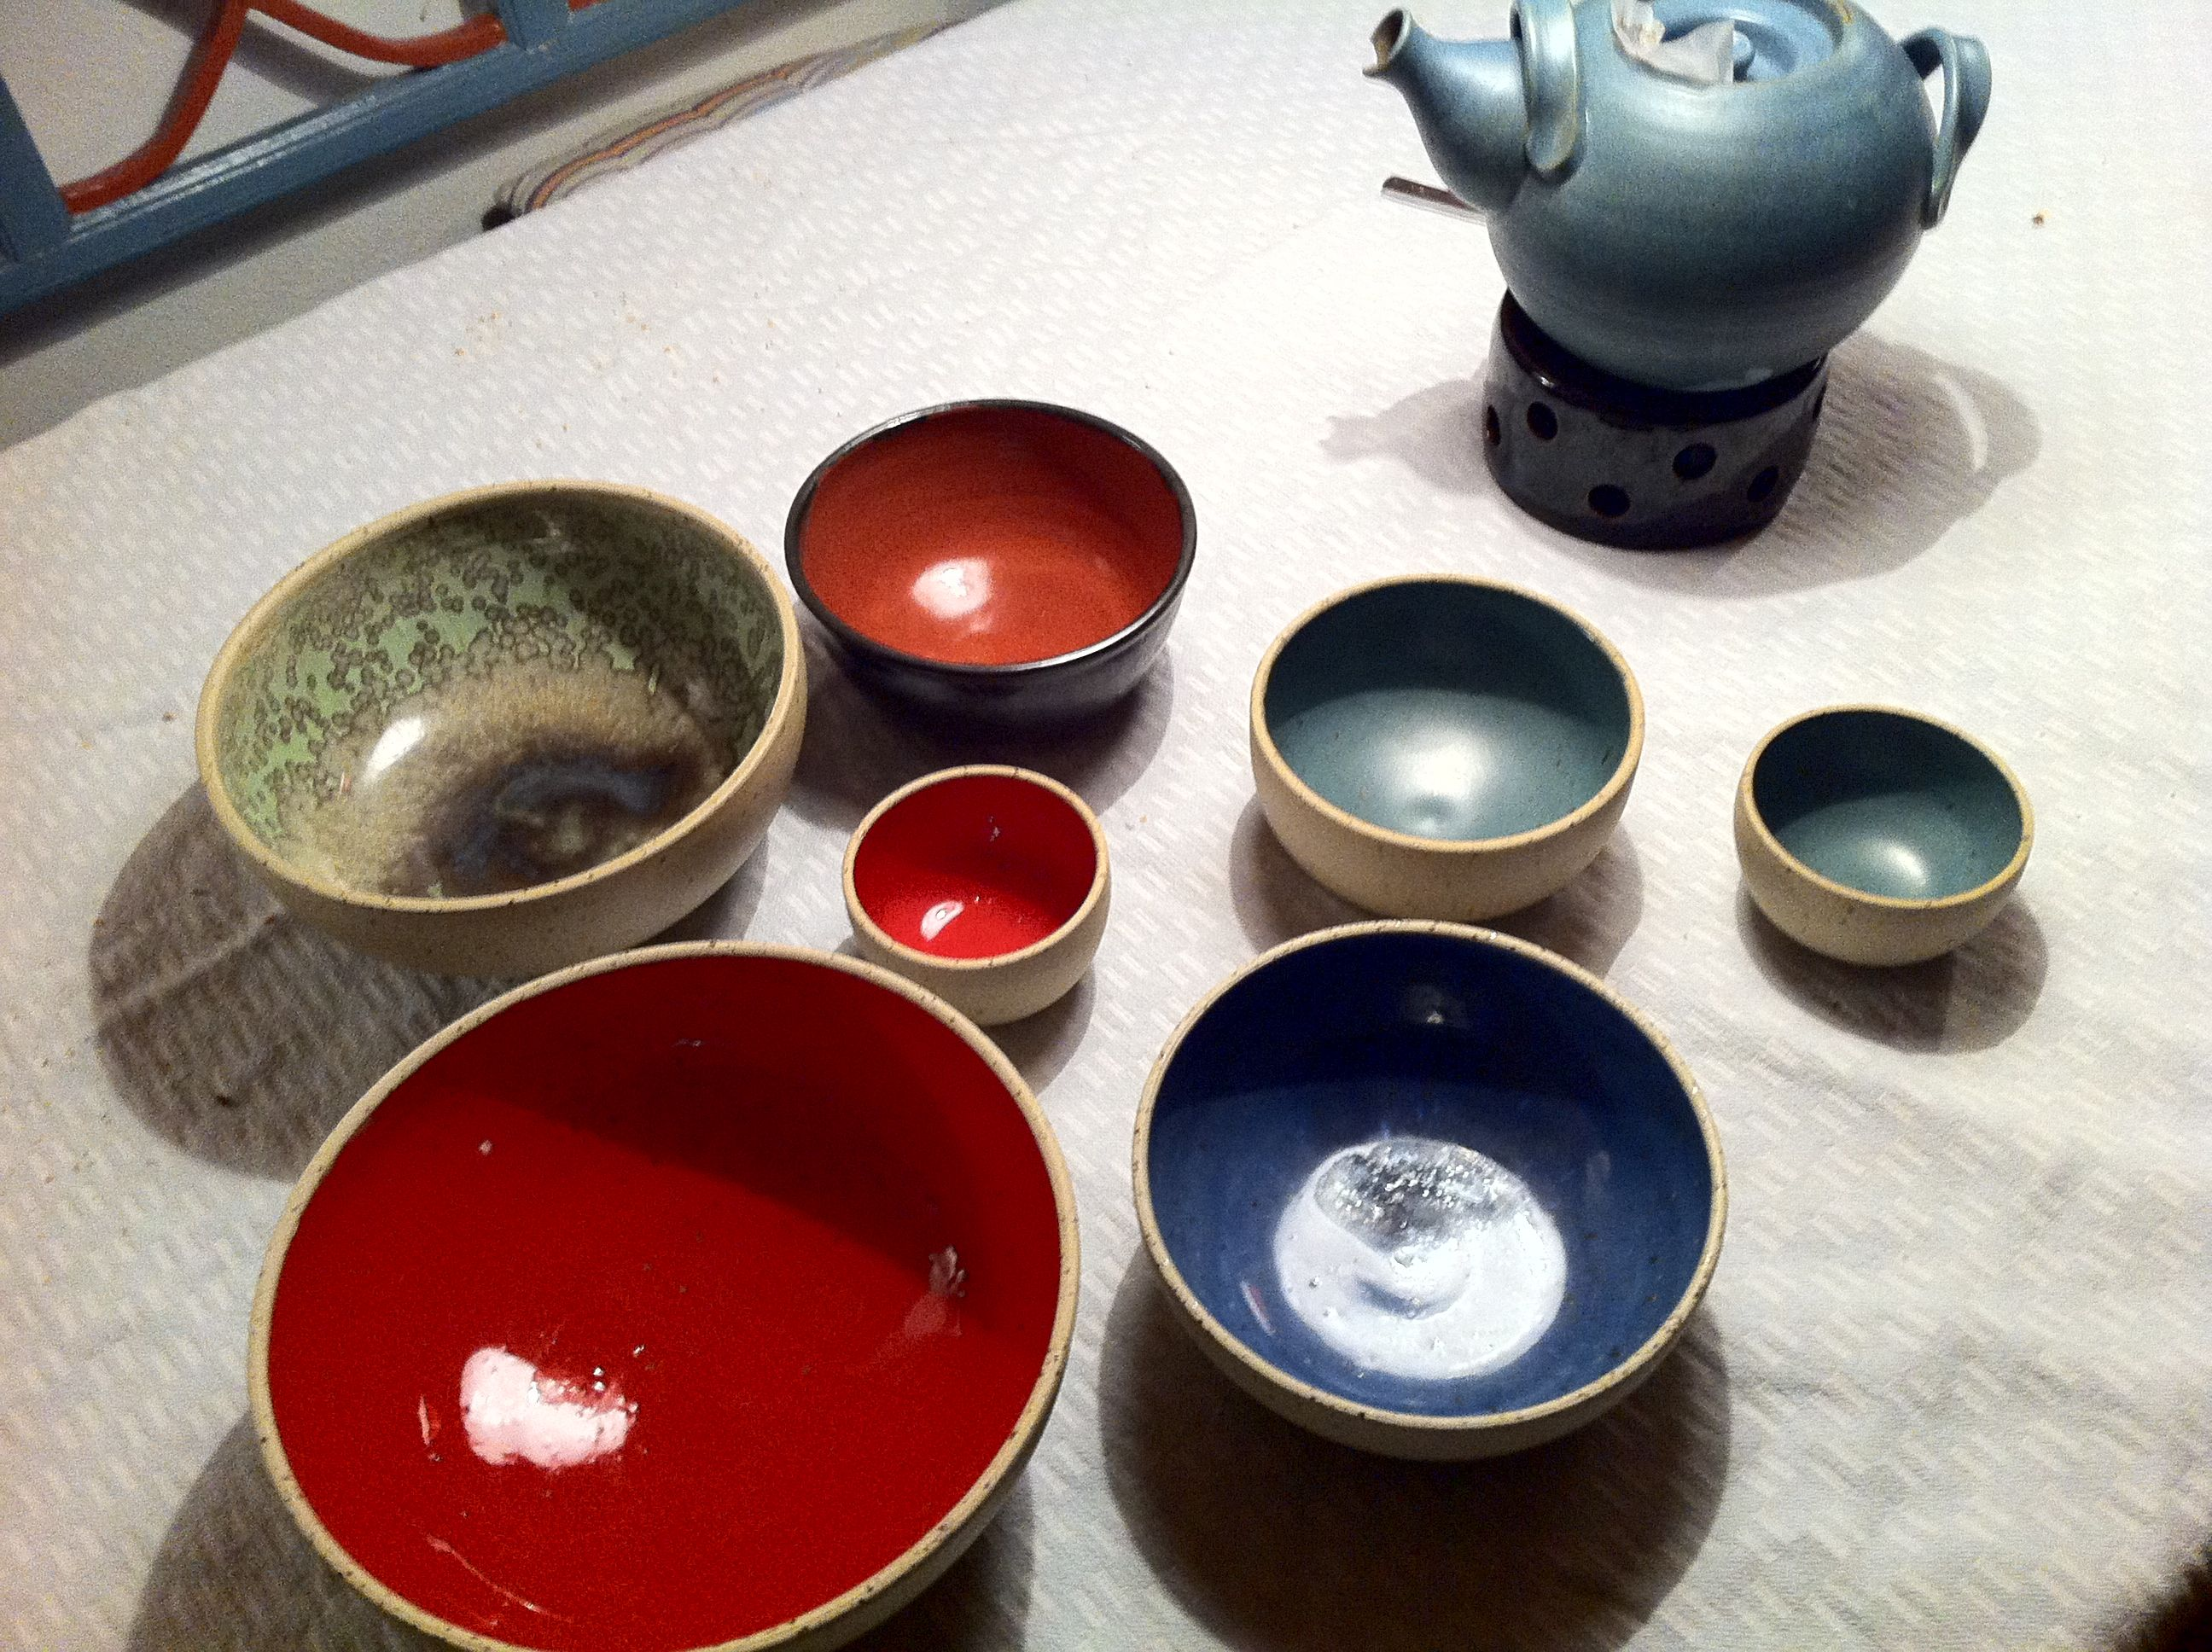 More Wonderful Bowls Done By Hand By German Meike Falck